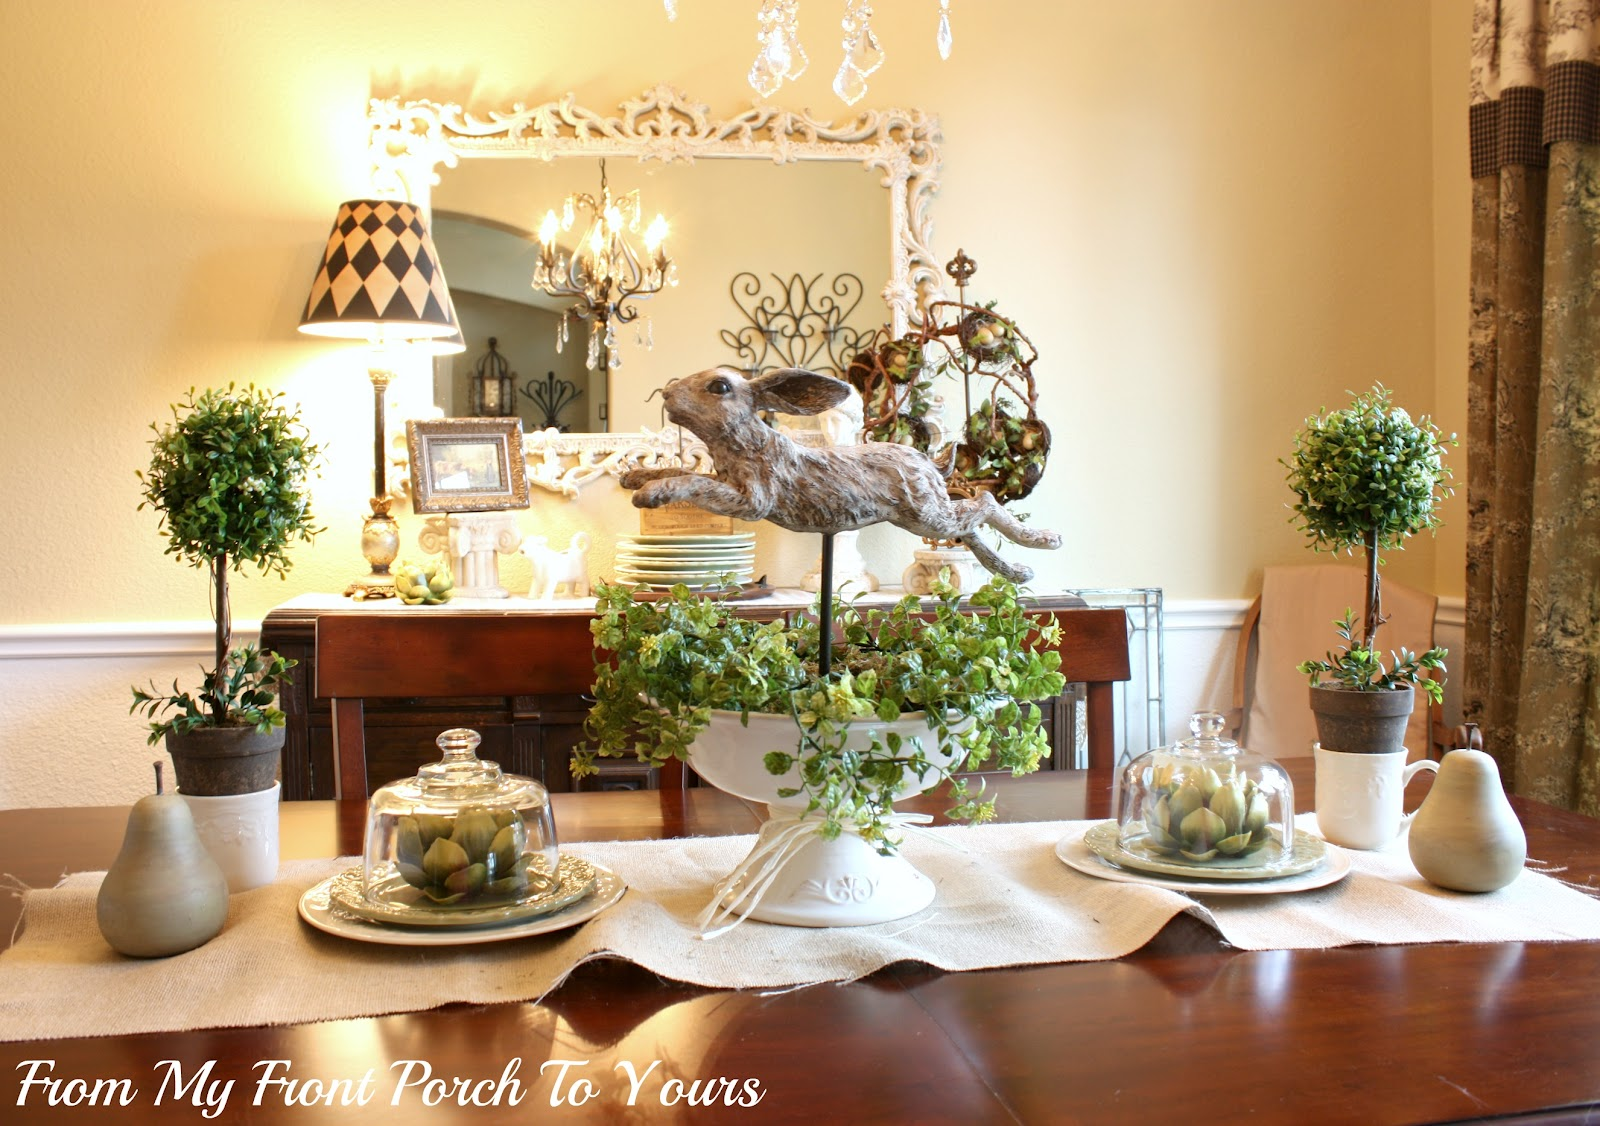 Our Spring Dining Room: From My Front Porch To Yours: Spring Dining Room